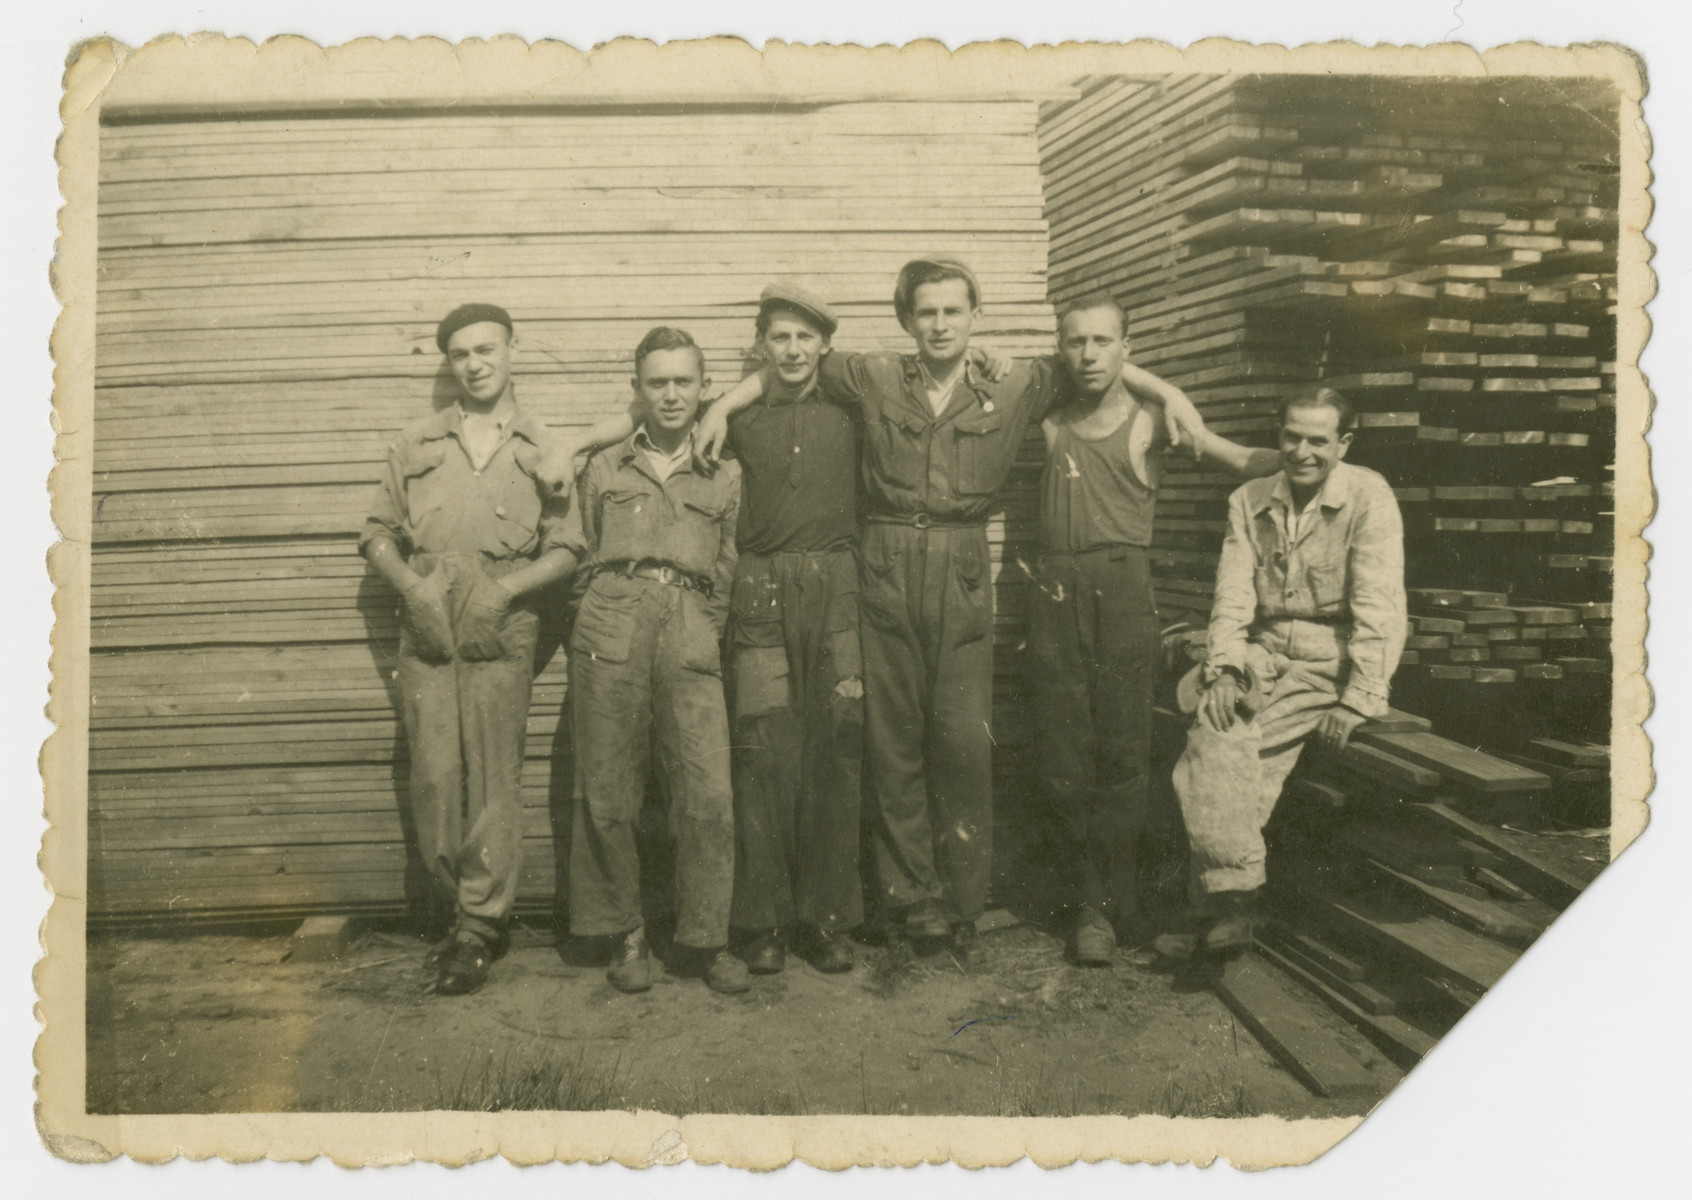 Polish Jewish men pose at a lumberyard [probably in prewar Poland] .  Those pictured include Tadeuz and Adolf Kleiman.